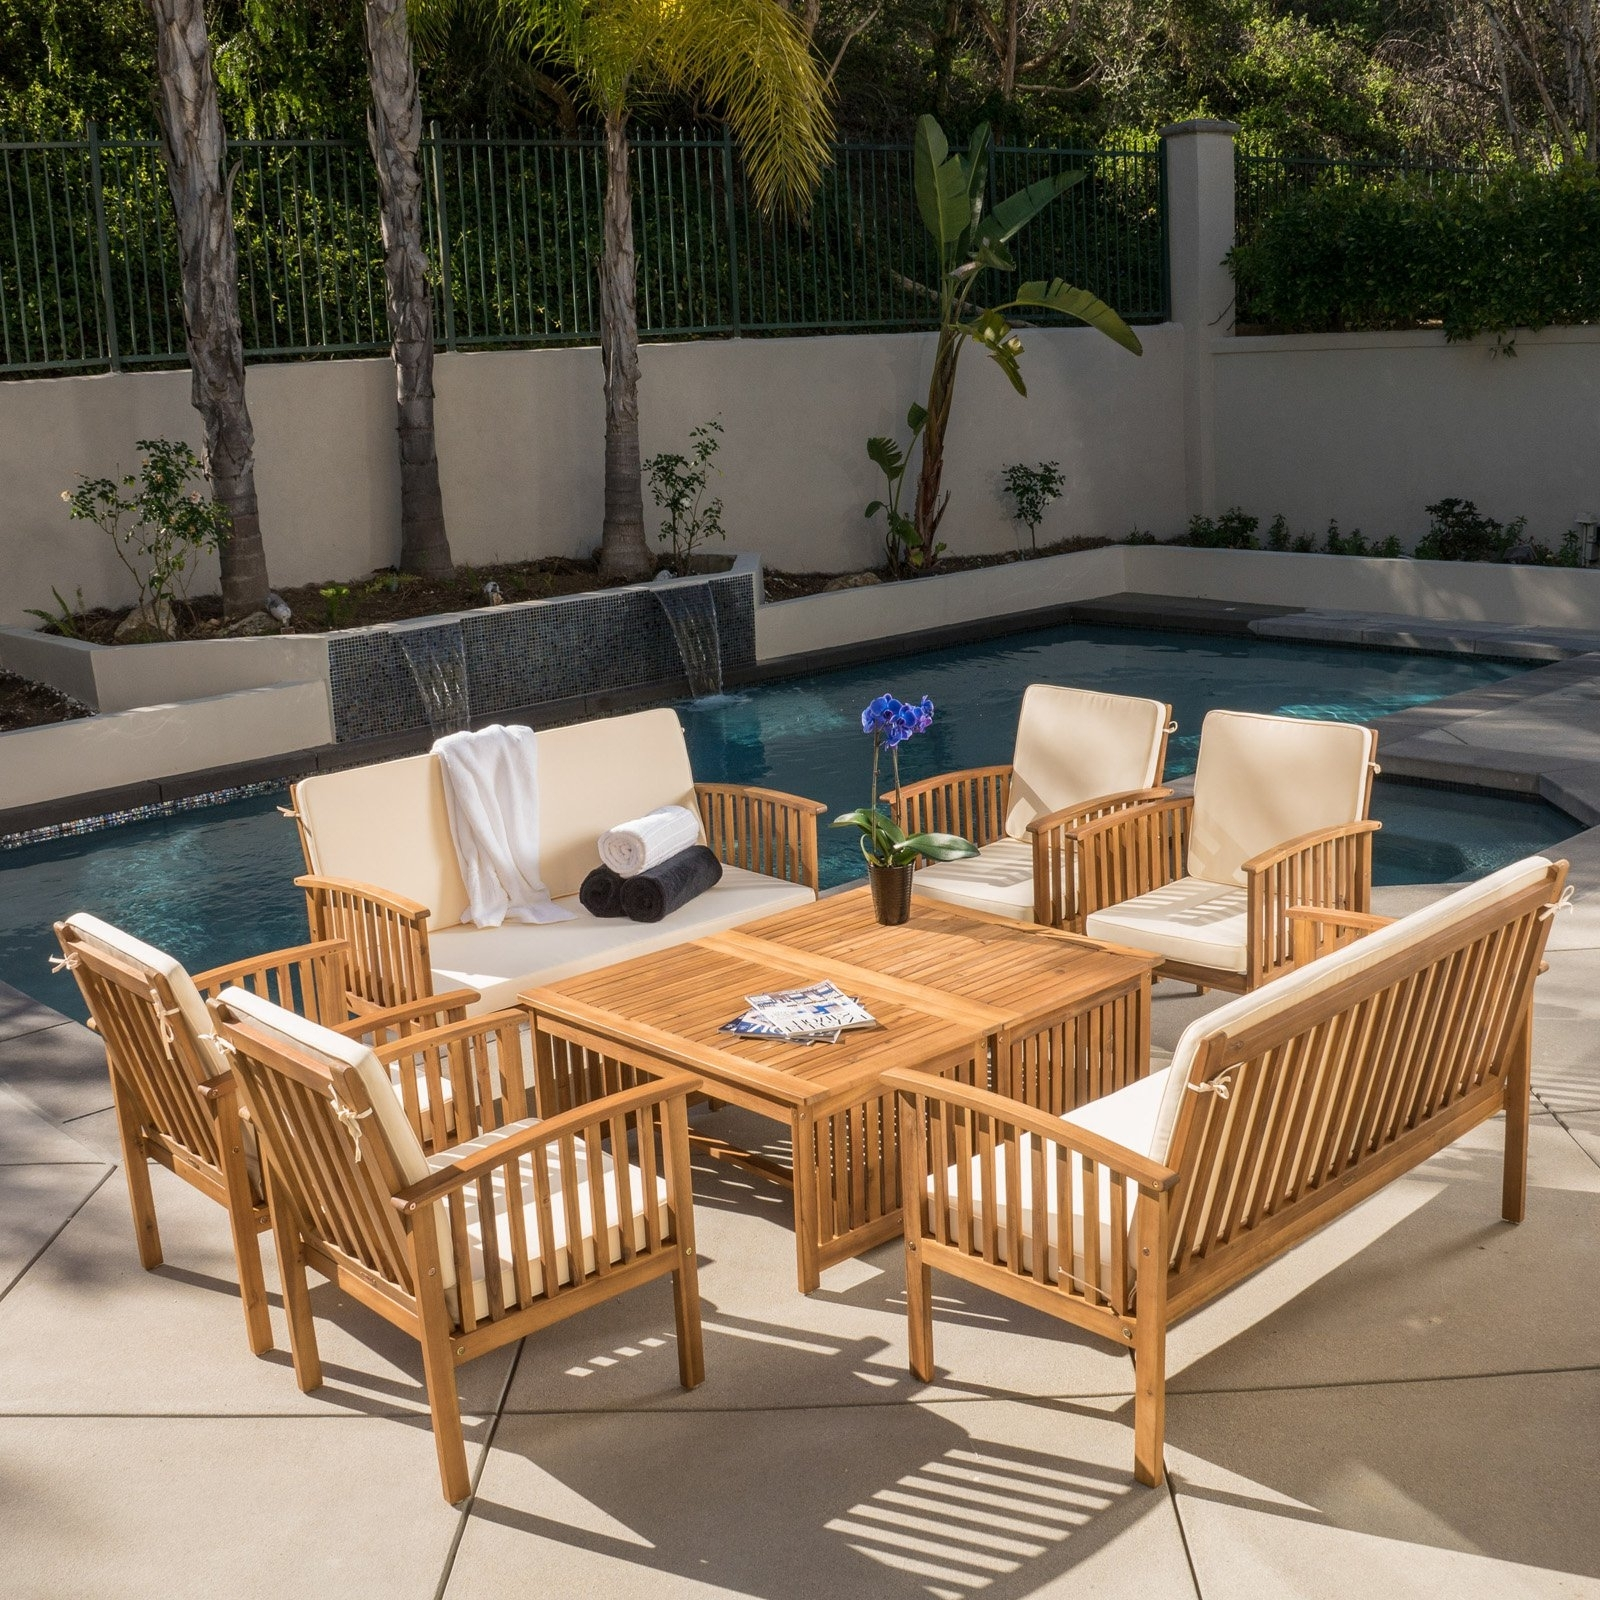 Hayak 8 Piece Conversation Set – Walmart With Regard To Most Recently Released Conversation Patio Sets With Outdoor Sectionals (View 8 of 15)